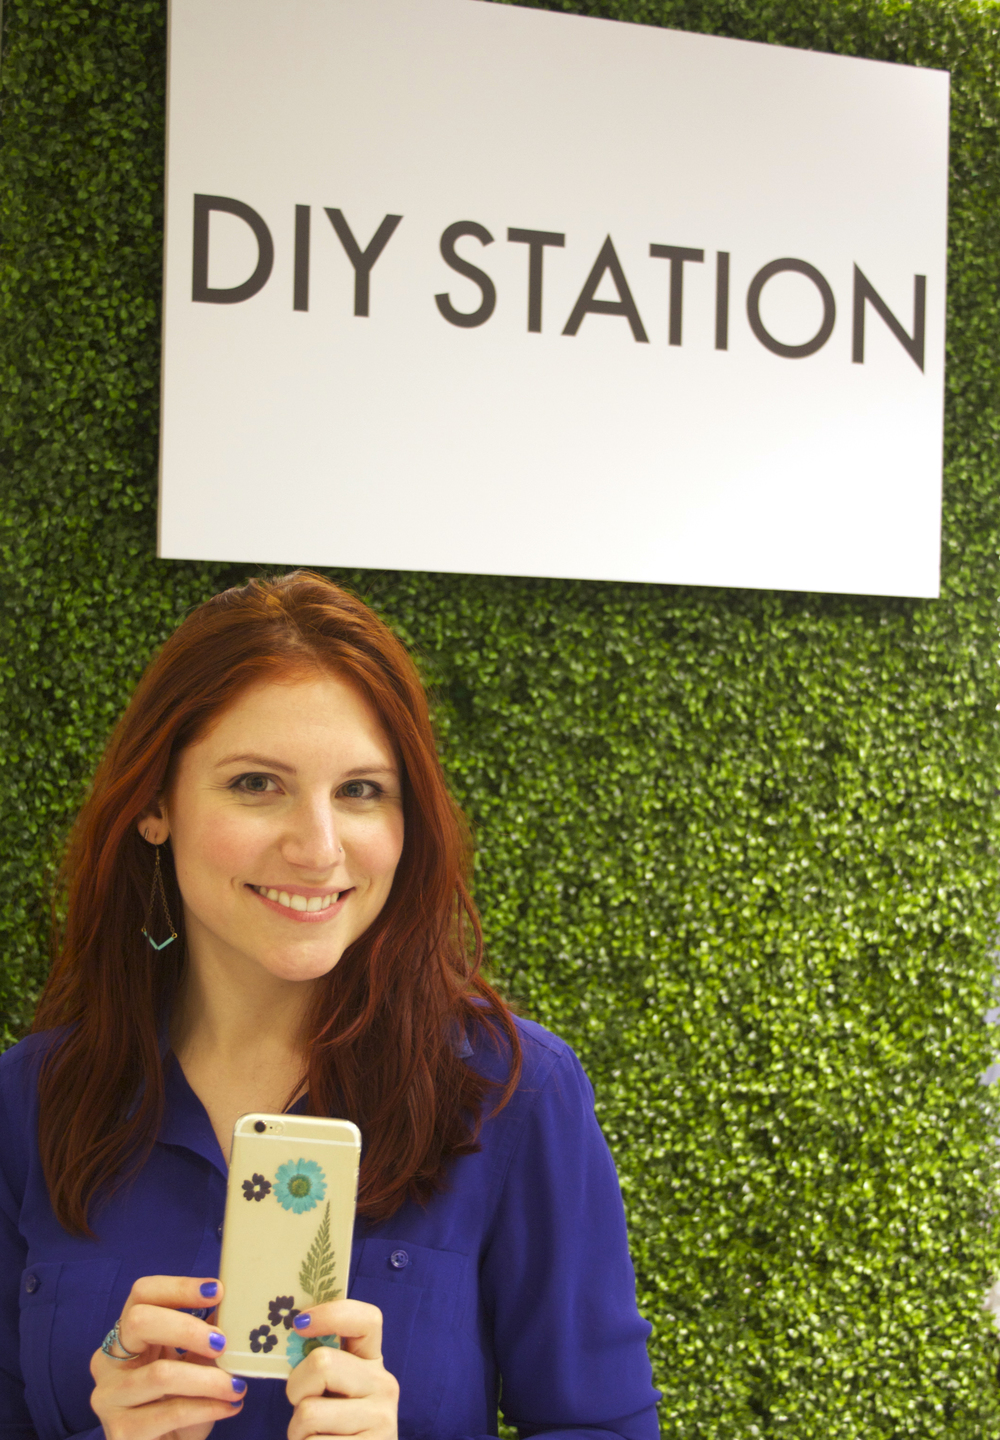 diy_station_macys_event_osb3.jpg